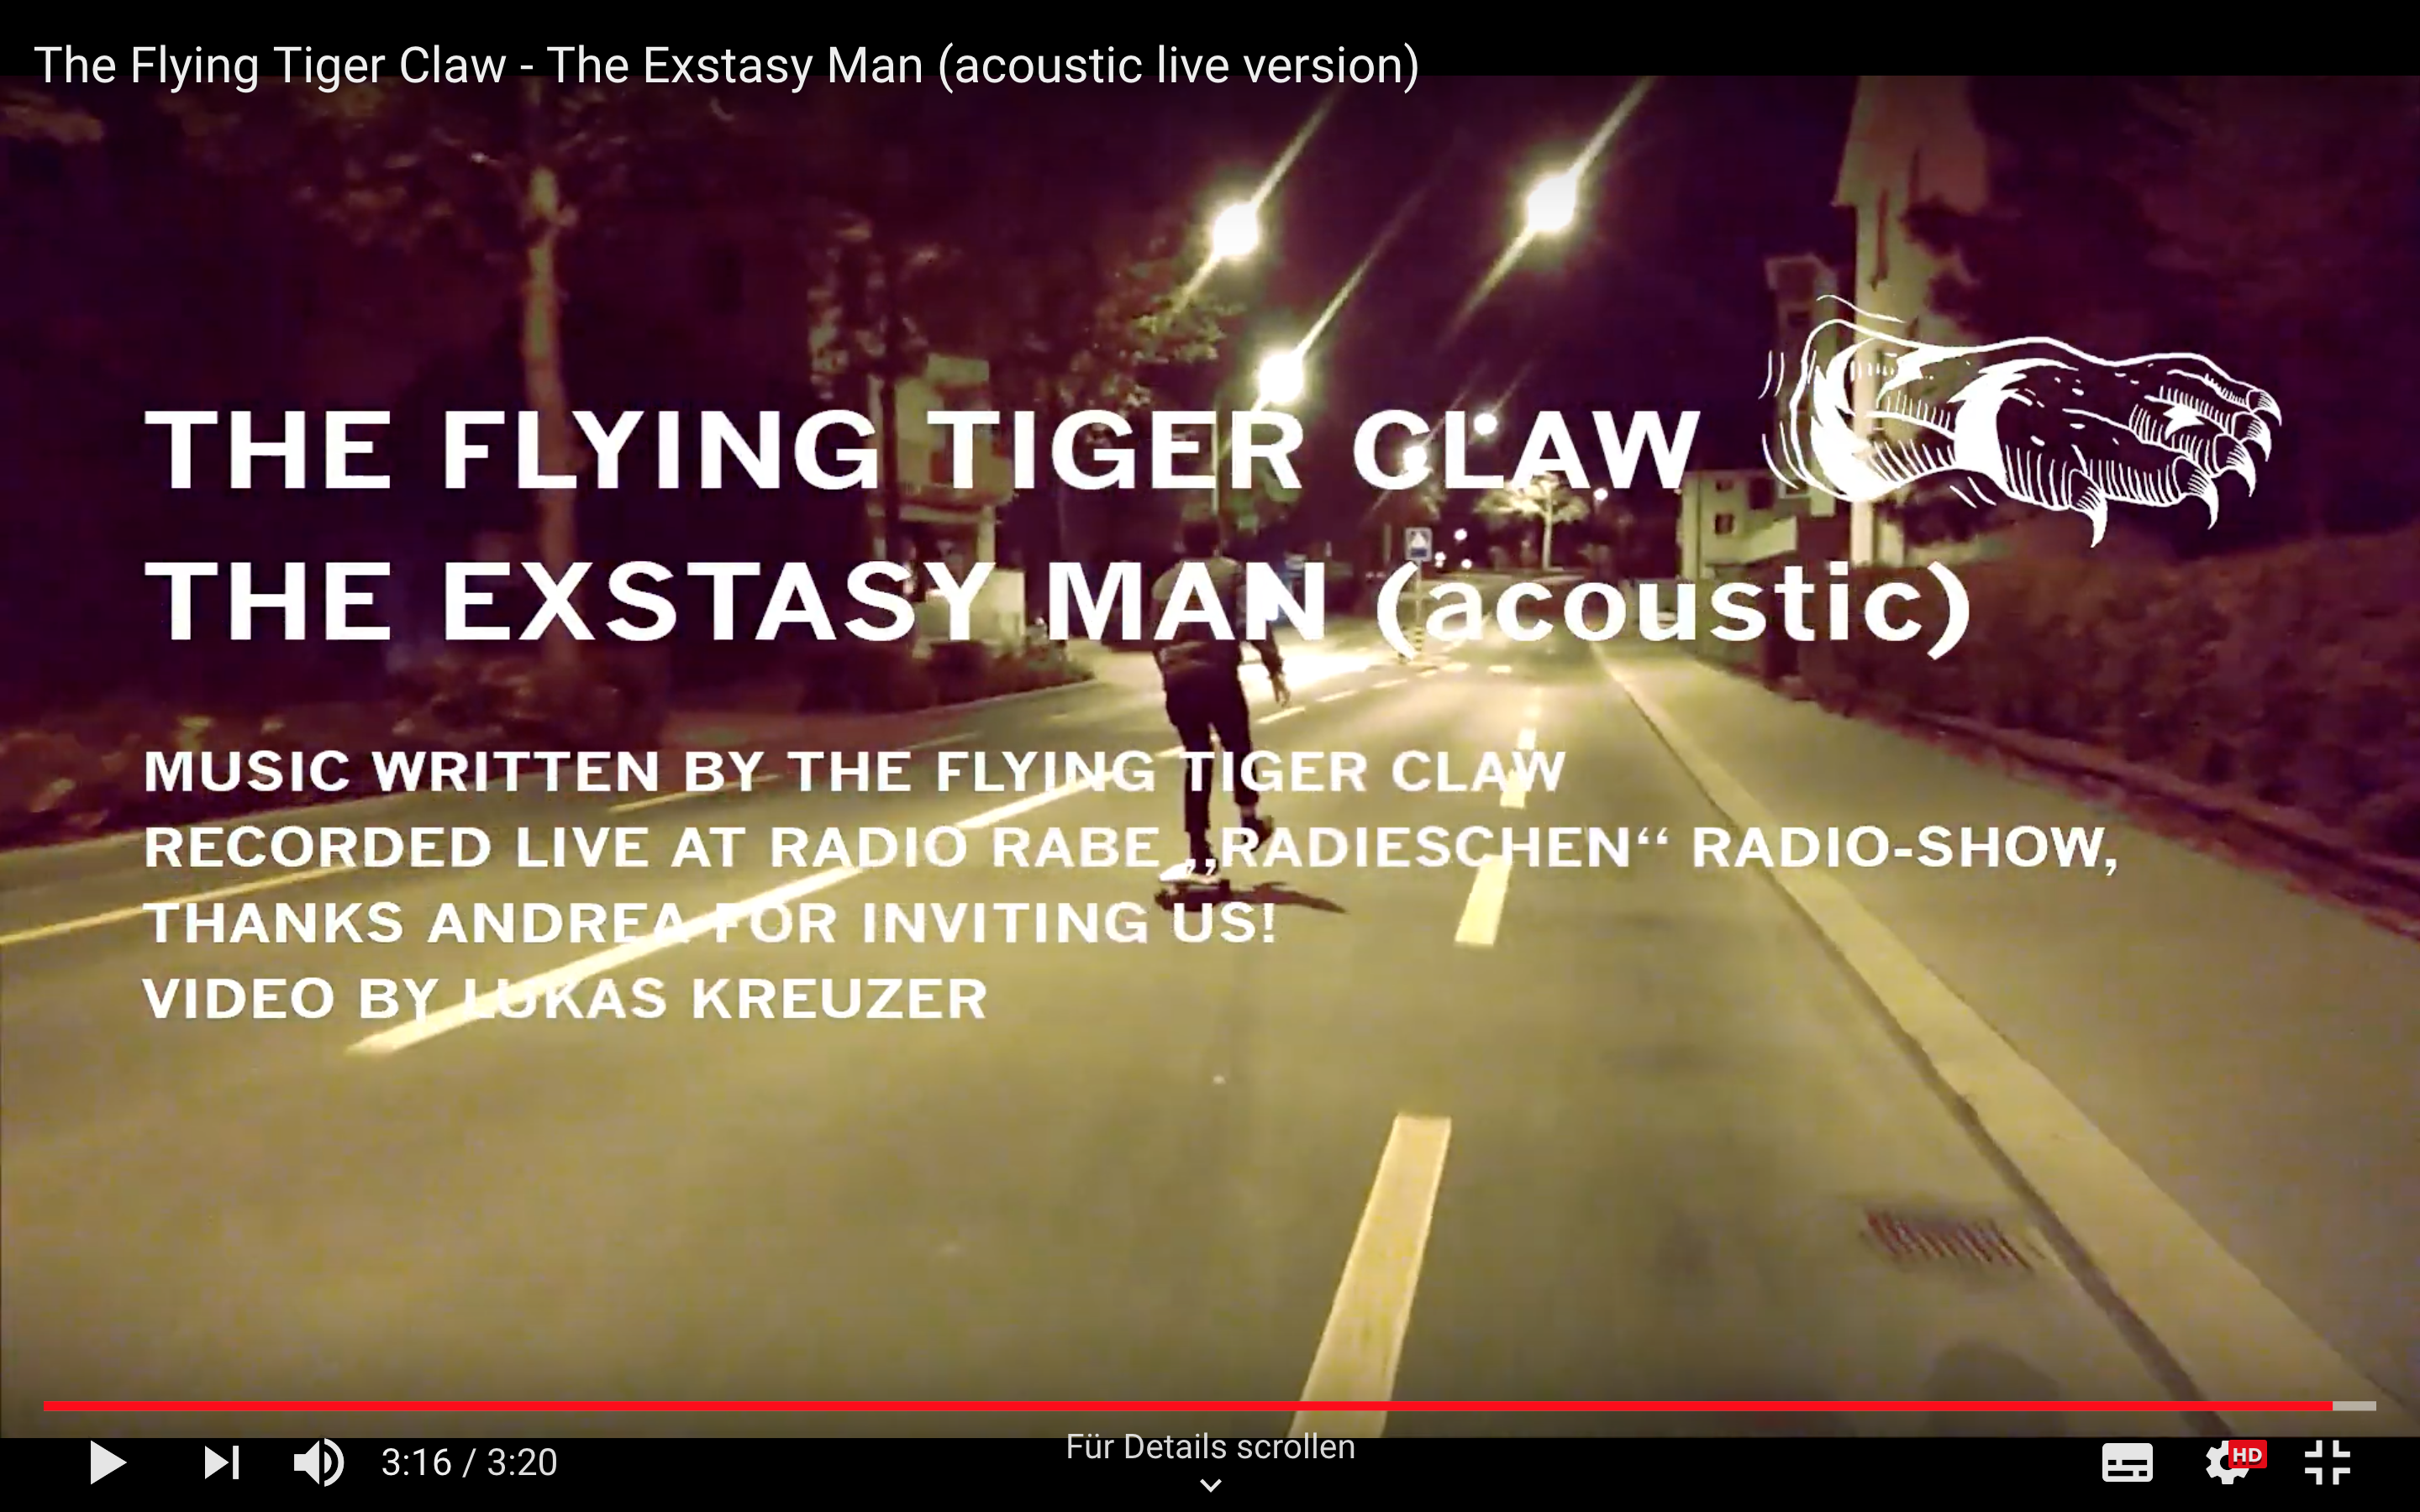 The Flying Tiger Claw - Extasy Man